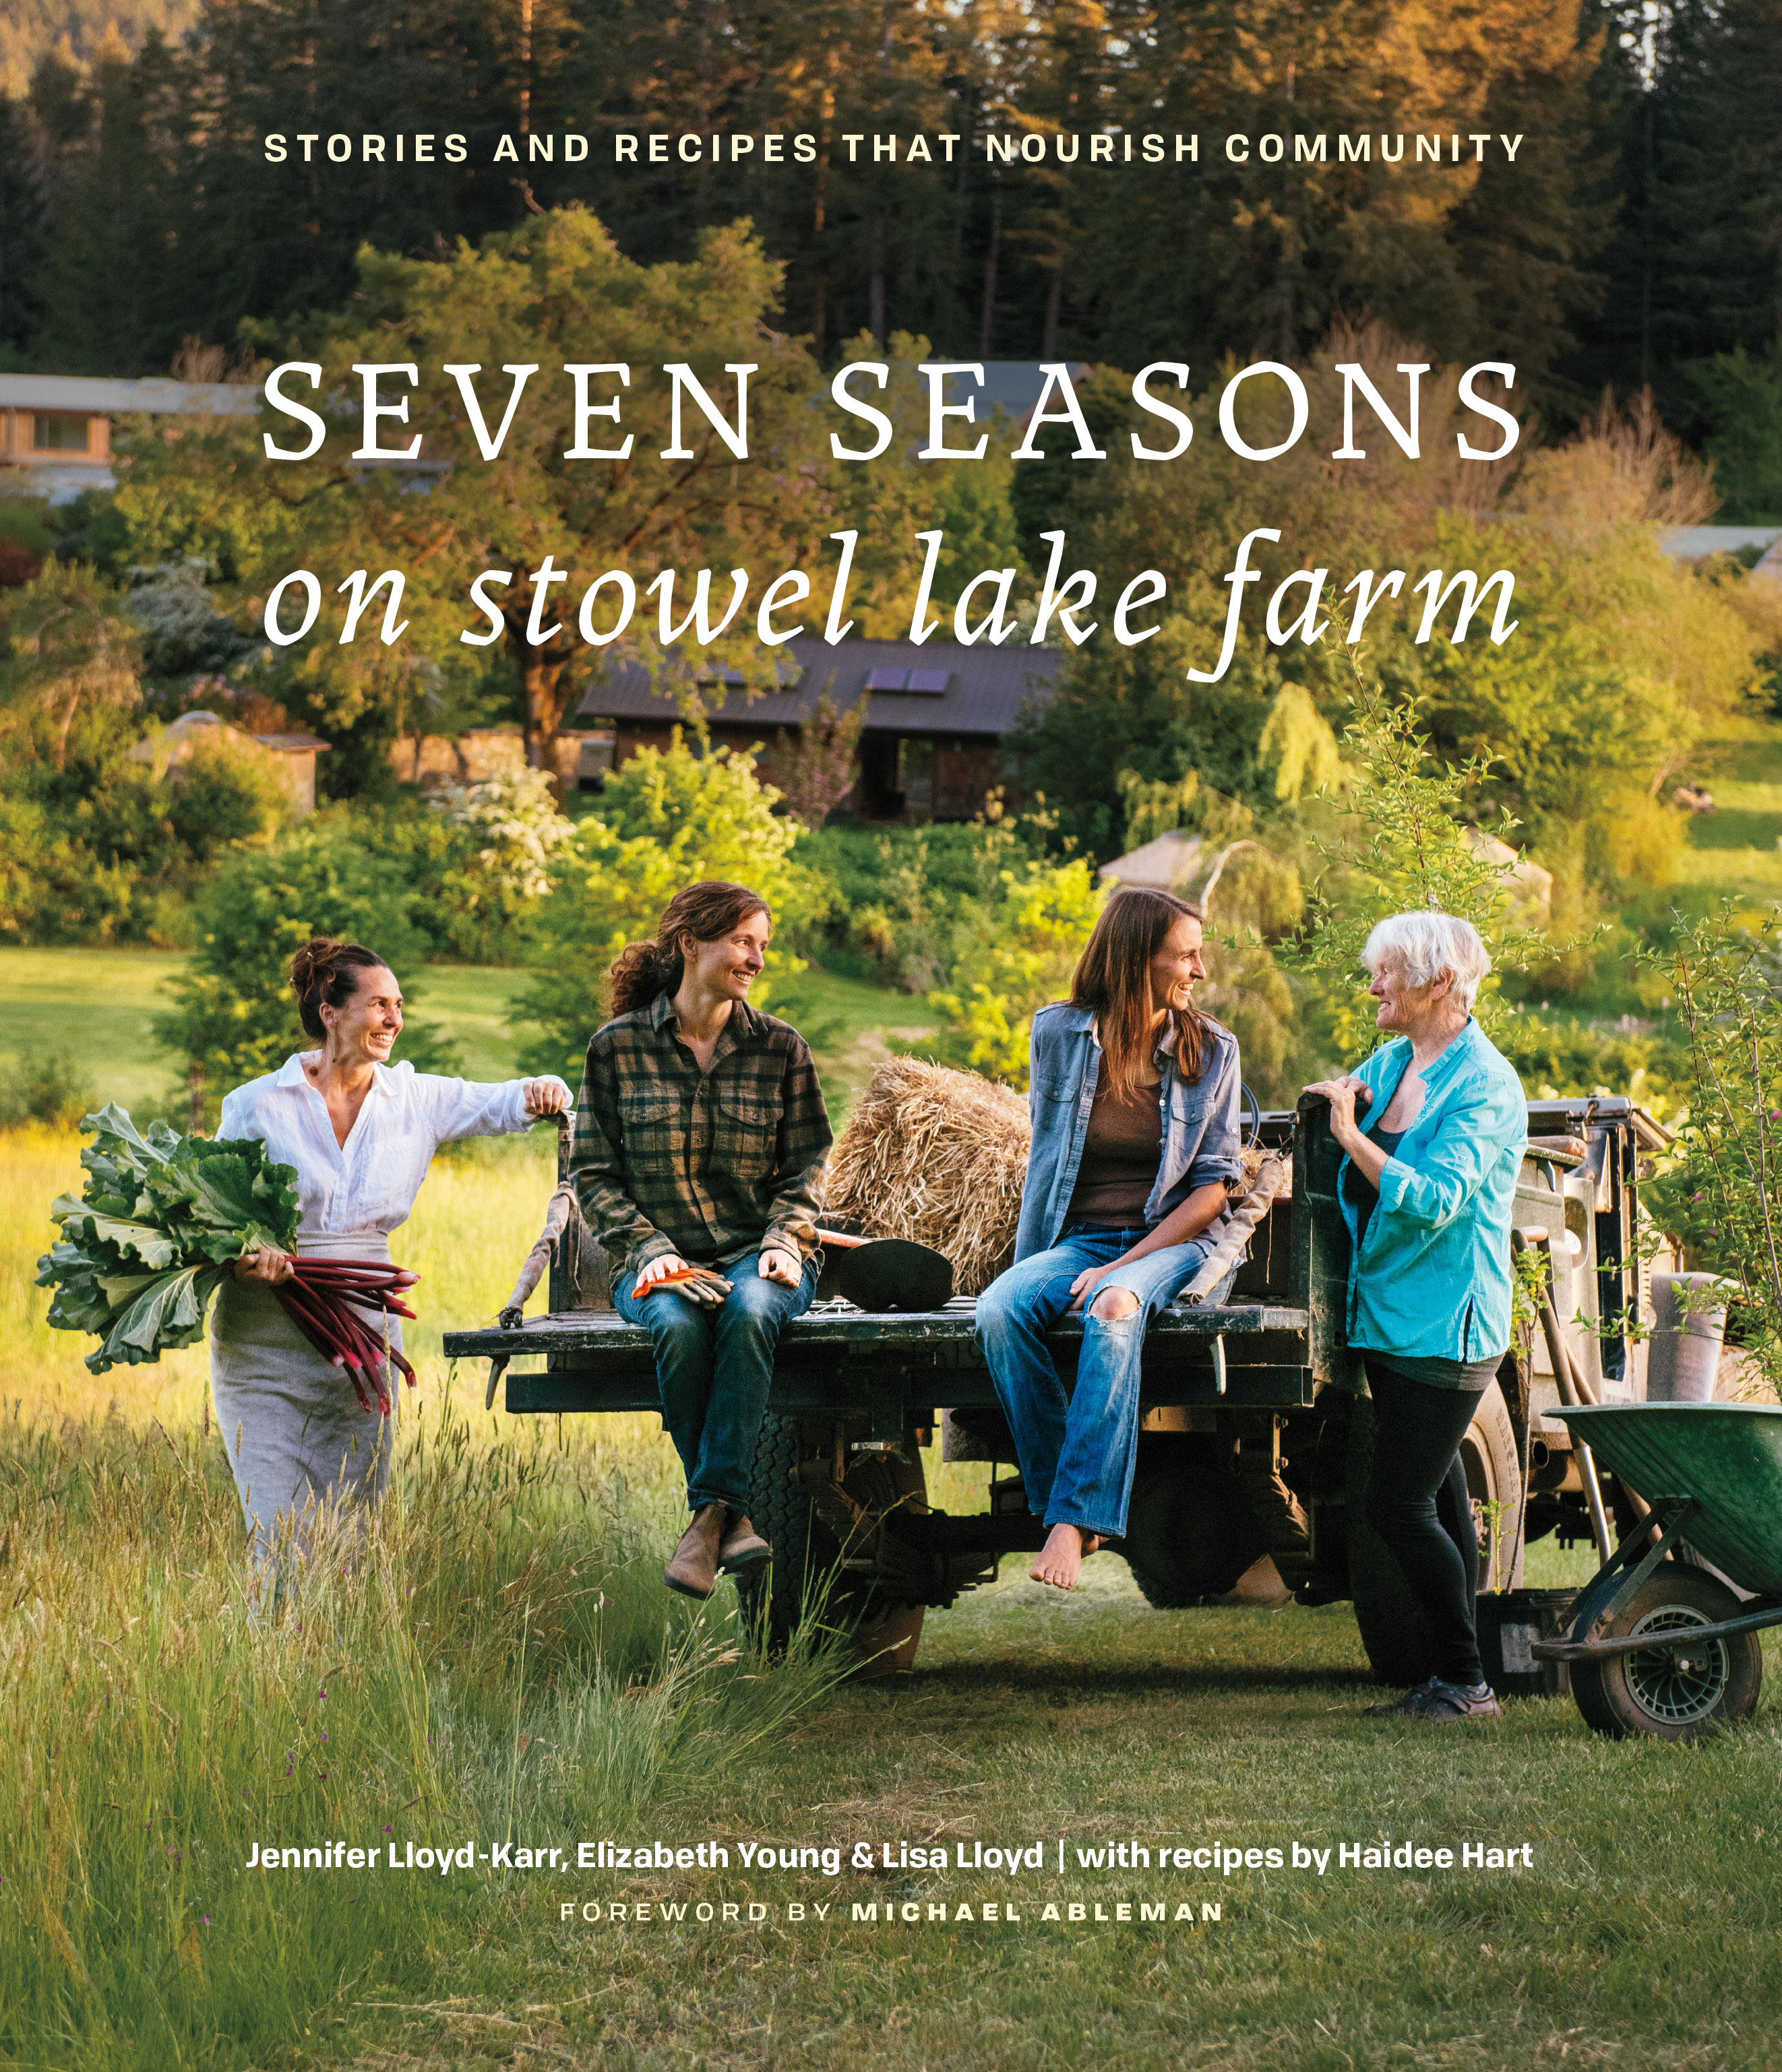 Seven Seasons on Stowel Lake Farm